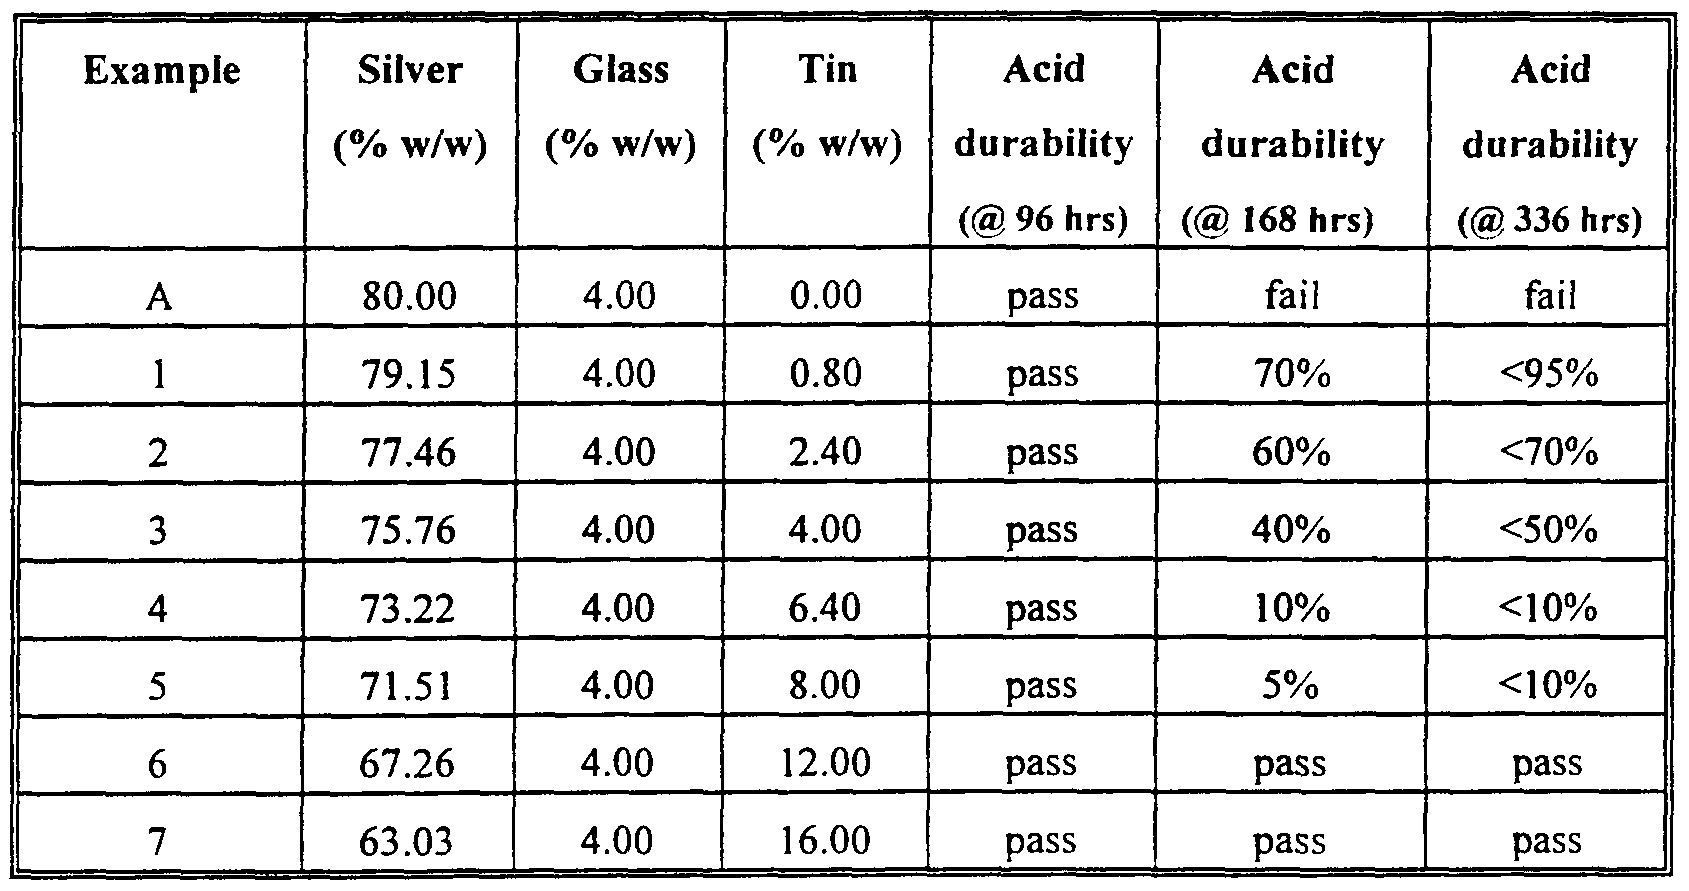 Hd wallpapers printable conversion chart for chemistry get free high quality hd wallpapers printable conversion chart for chemistry geenschuldenfo Gallery